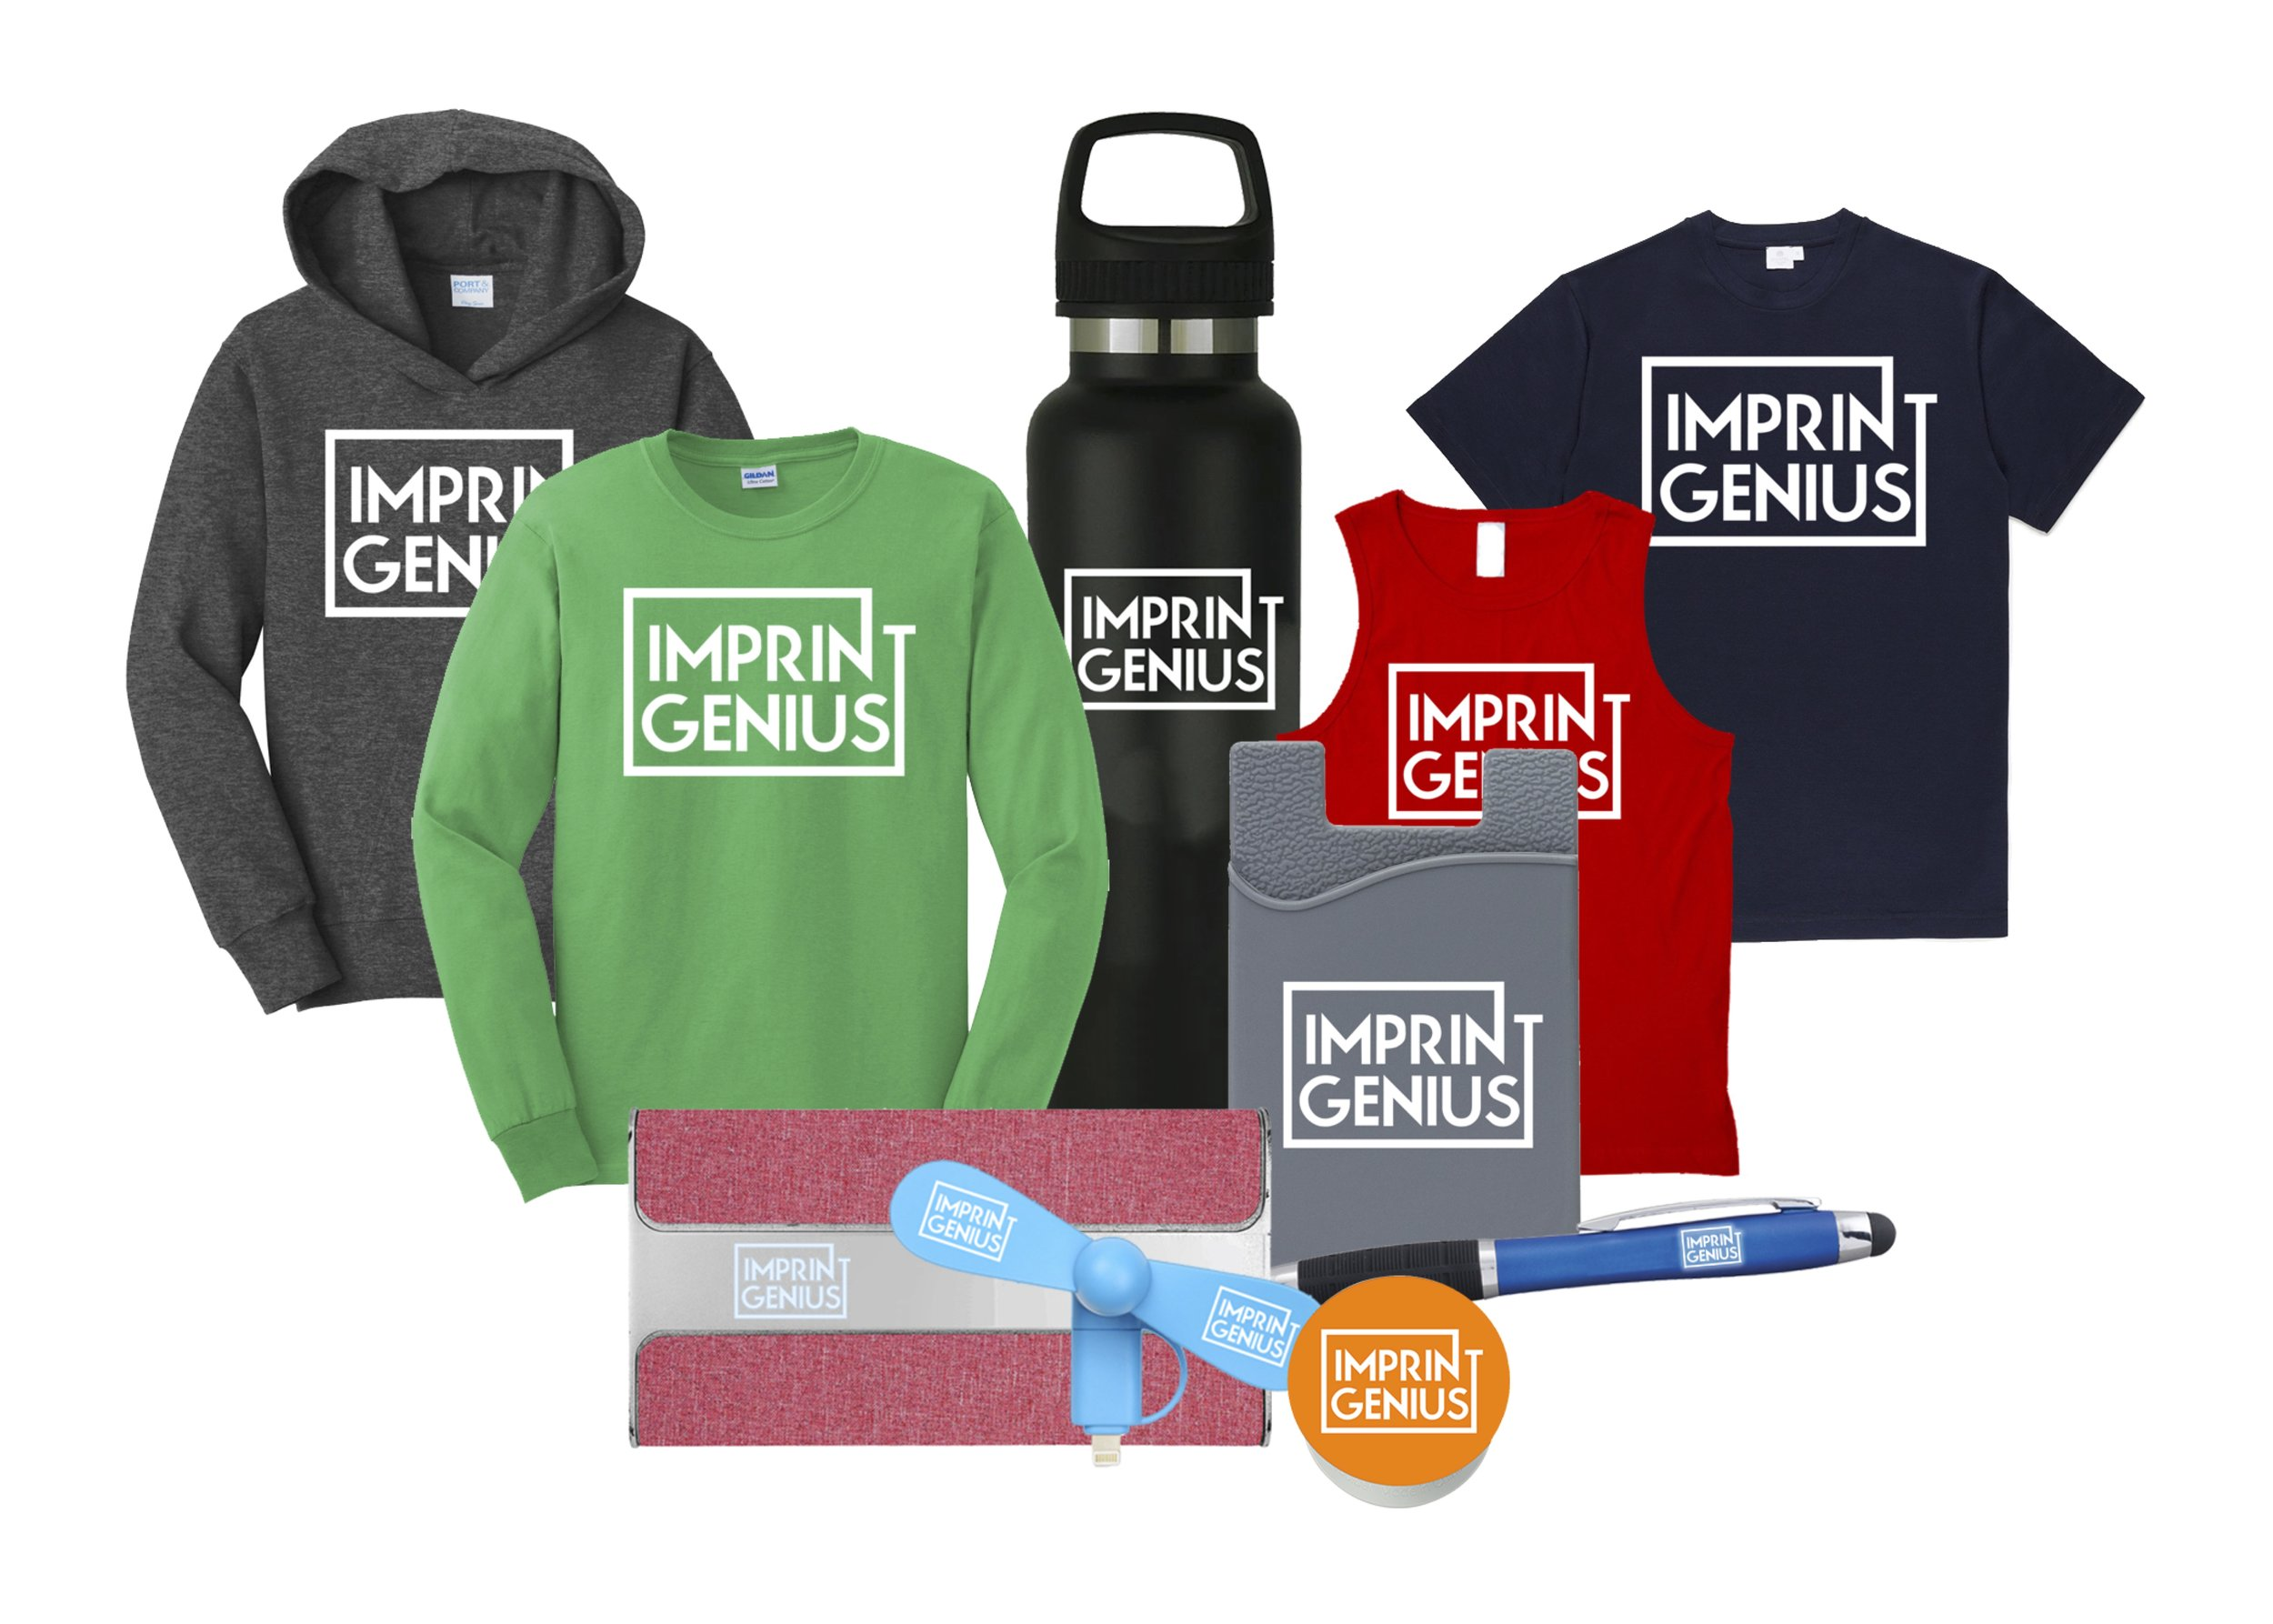 Swag For Your Brand - Apparel, Pop-sockets, Bags and anything else you can imagine with your brand on it